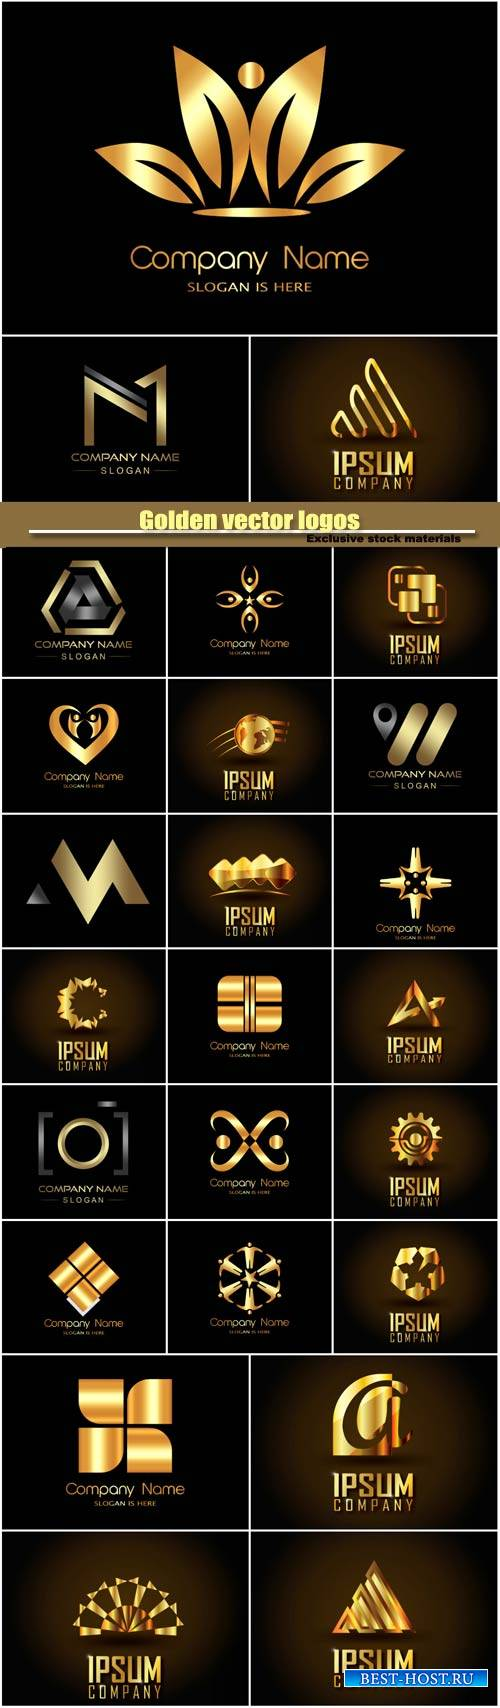 Golden vector logos, business company icon #3